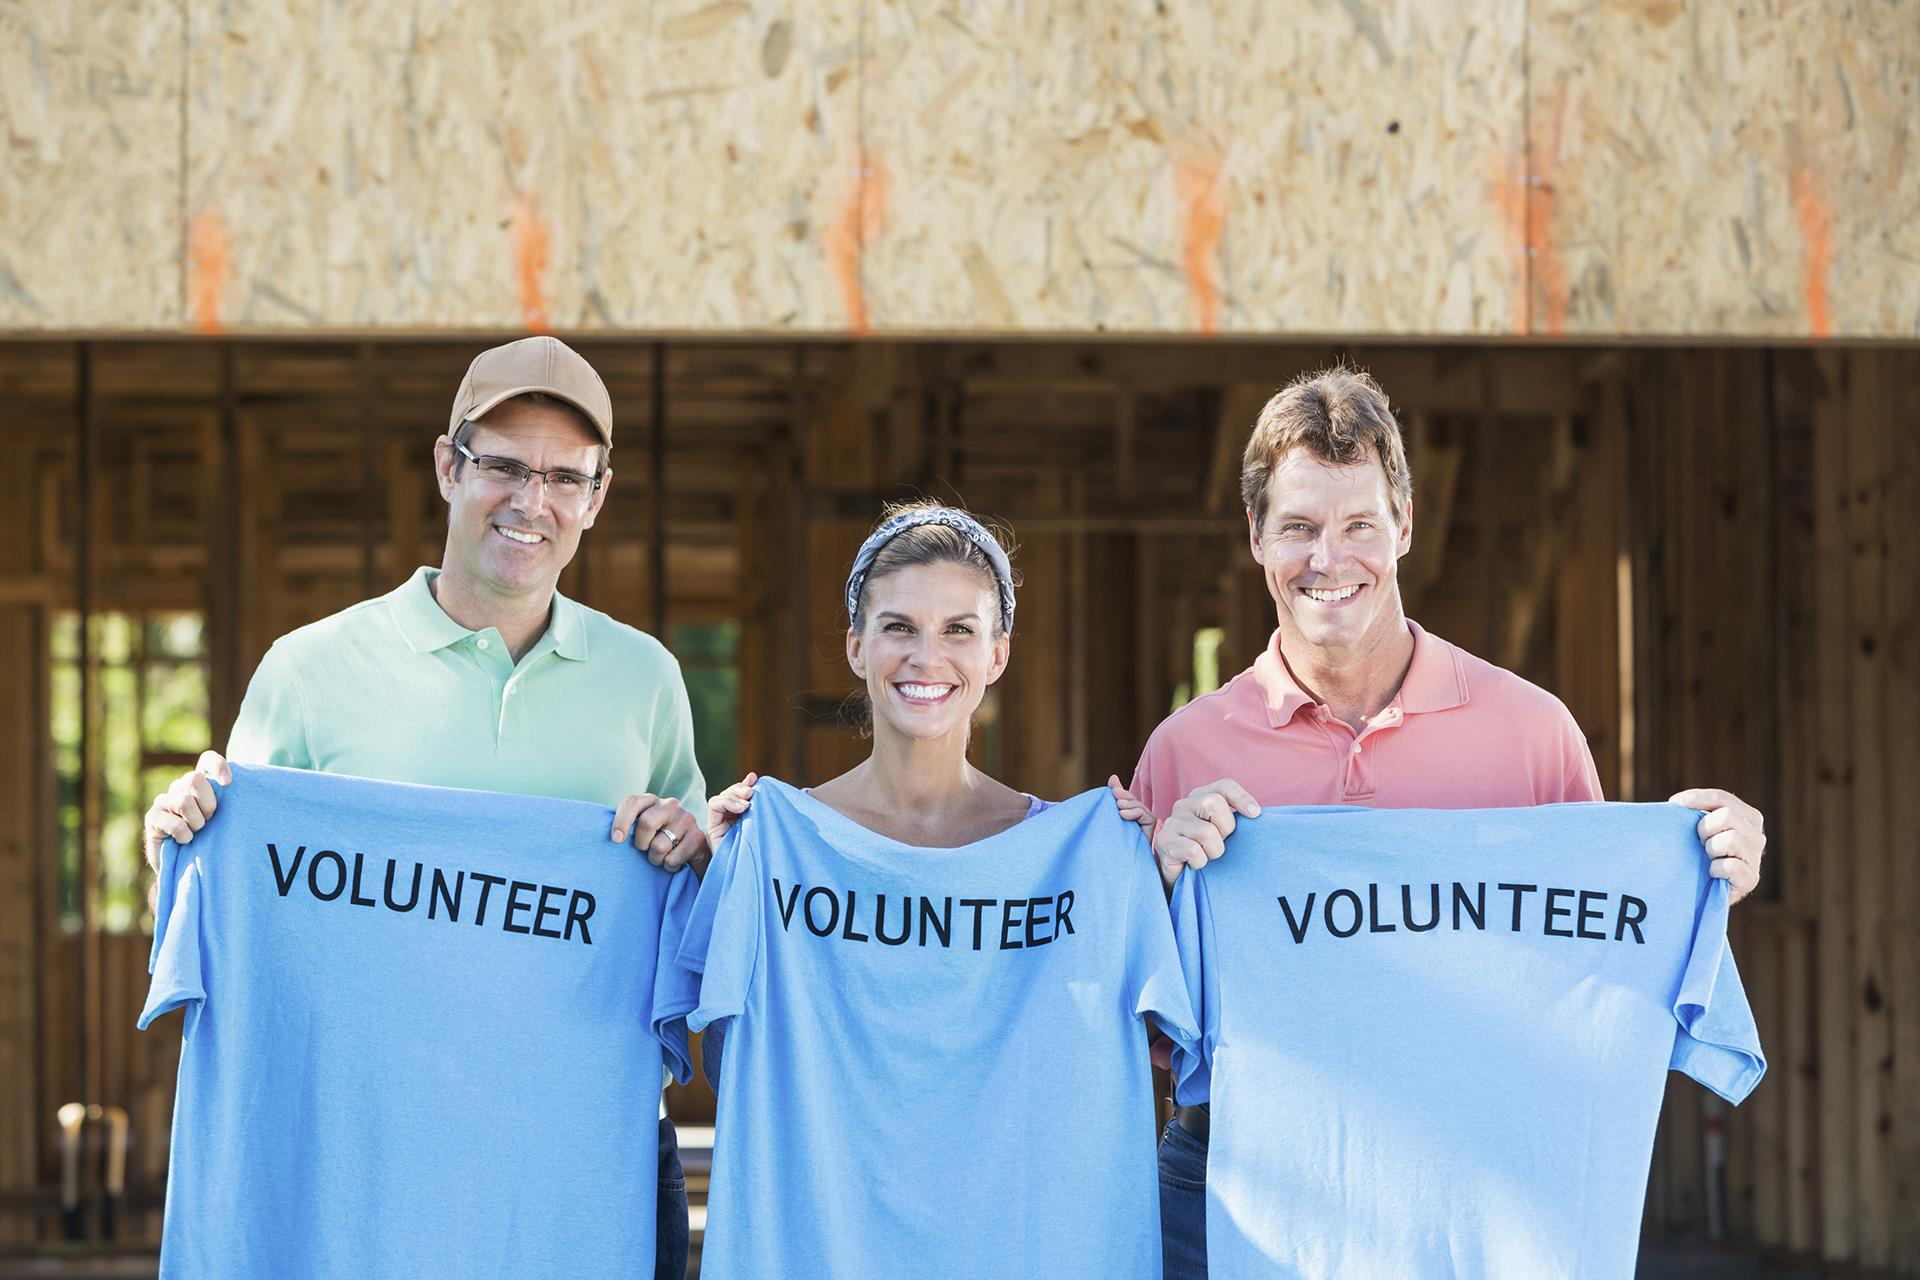 Three volunteers holding blue volunteer shirt